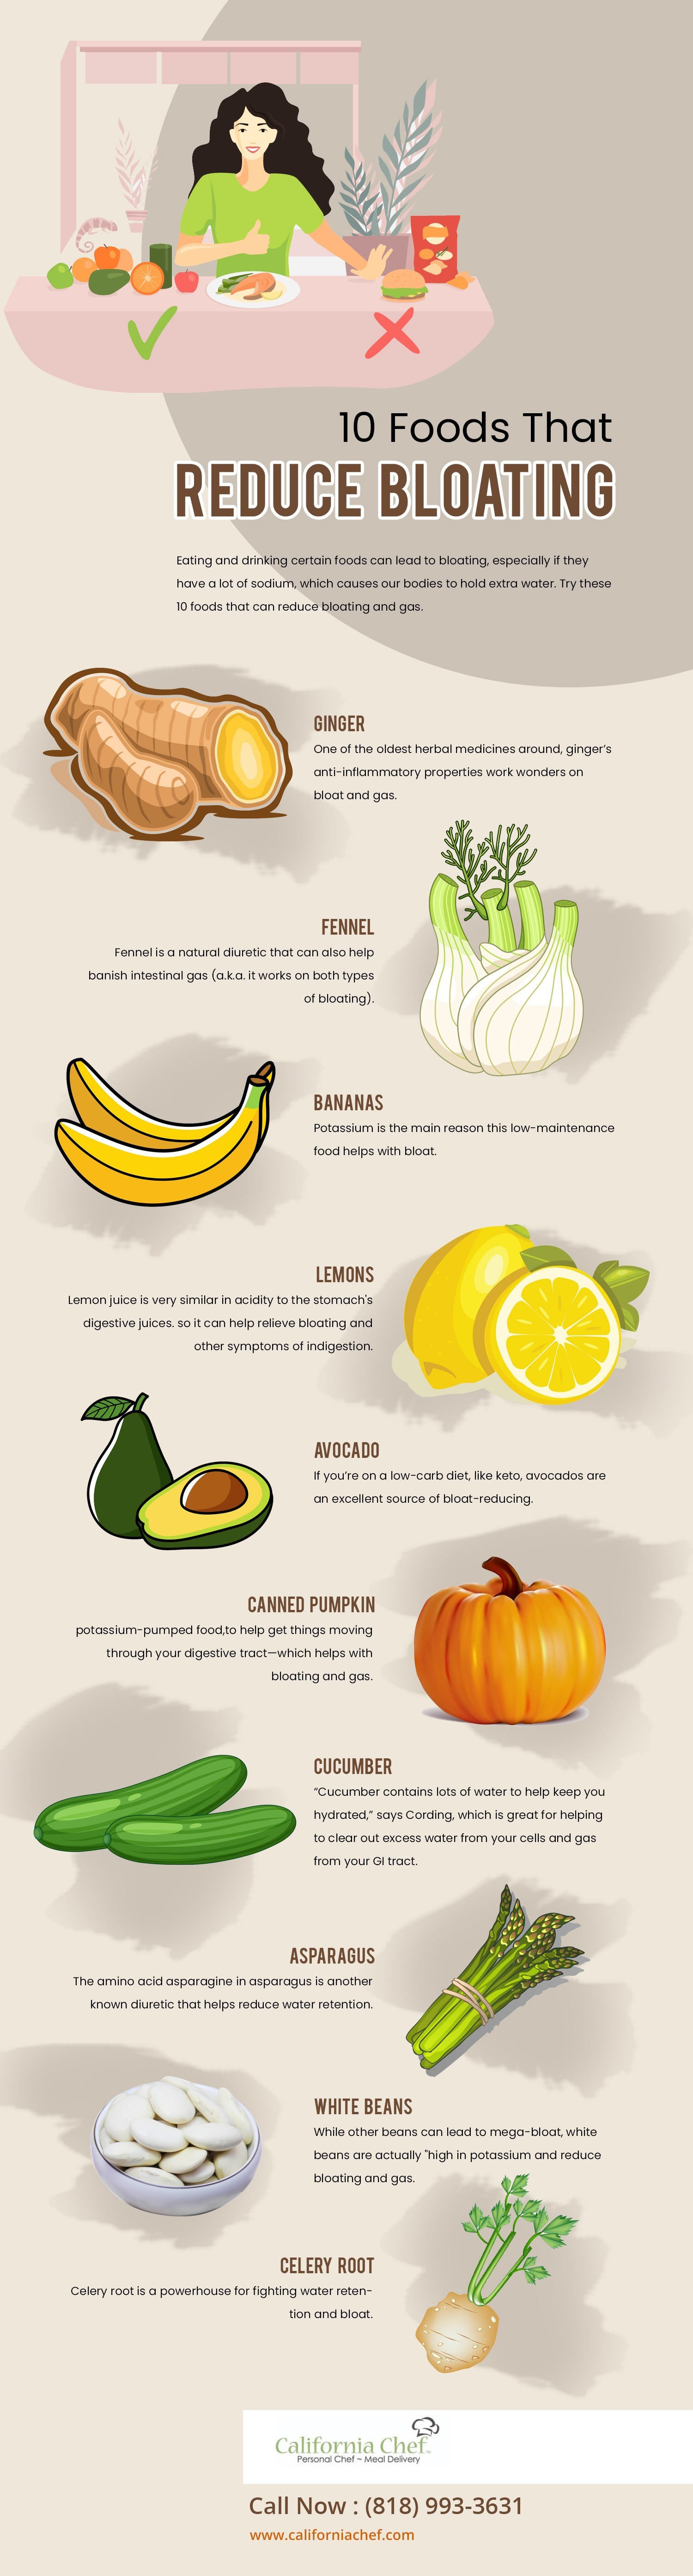 10 Foods That Reduce Bloating